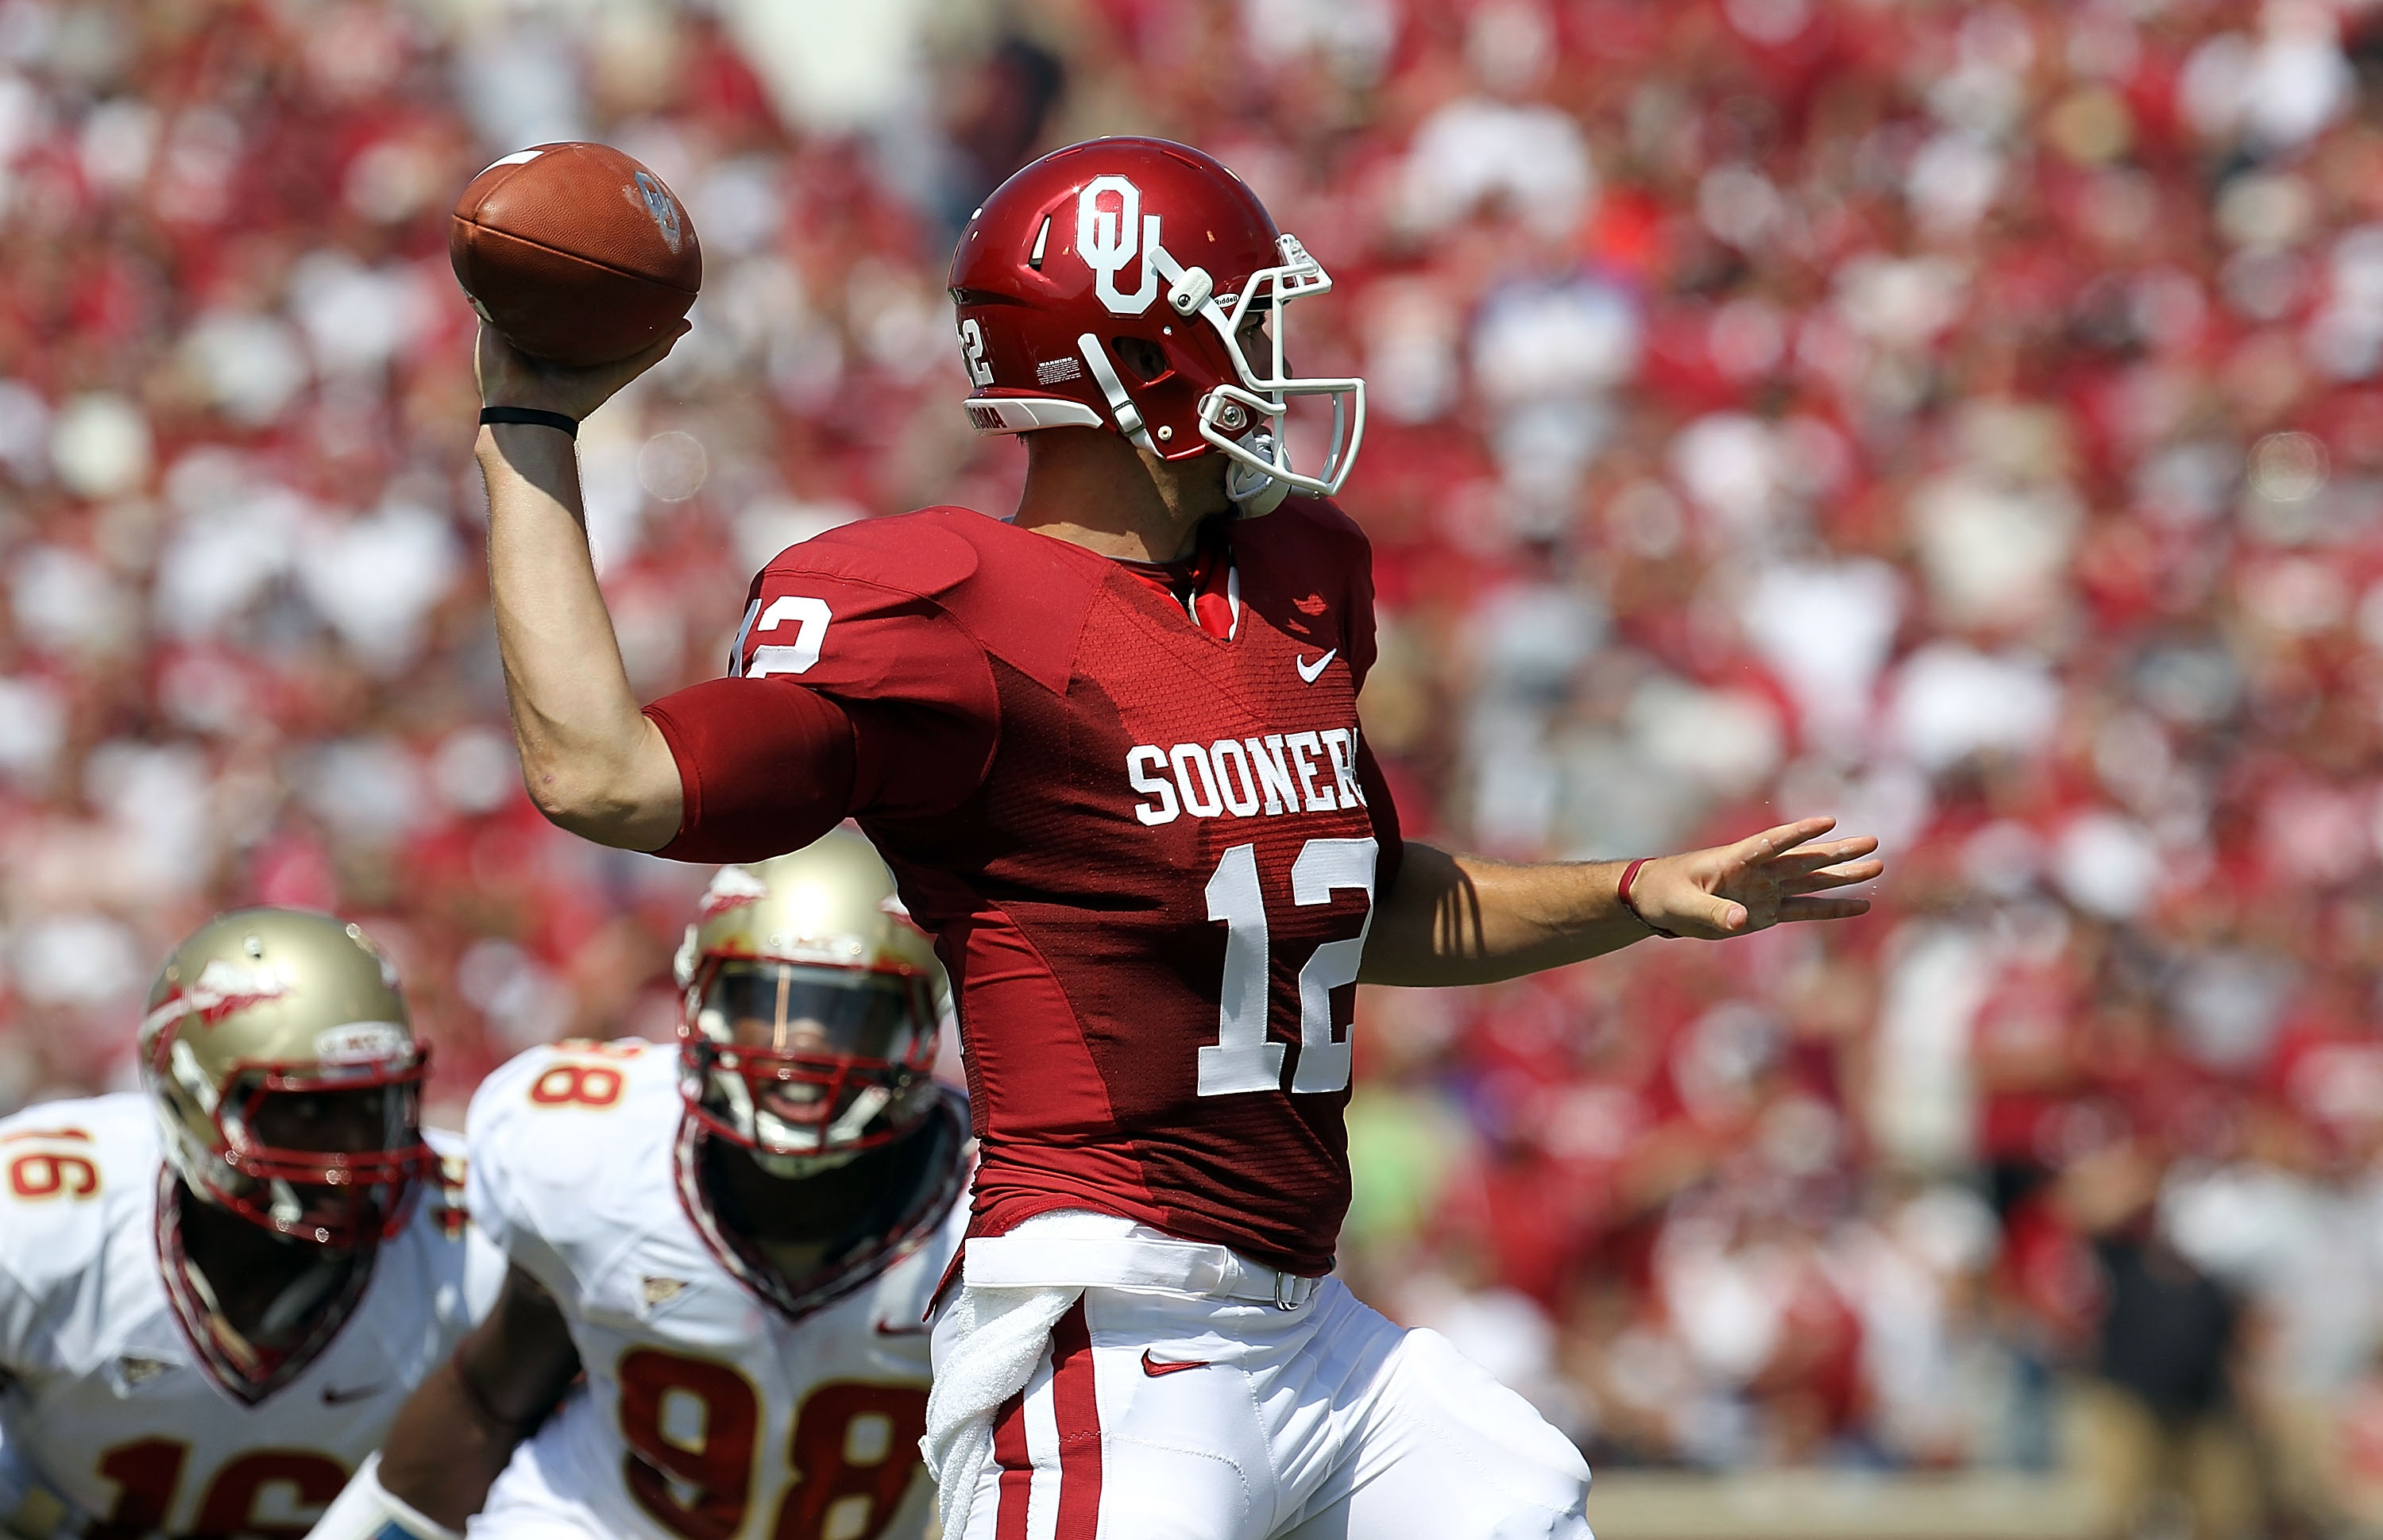 Florida State registered only one sack on Landry Jones